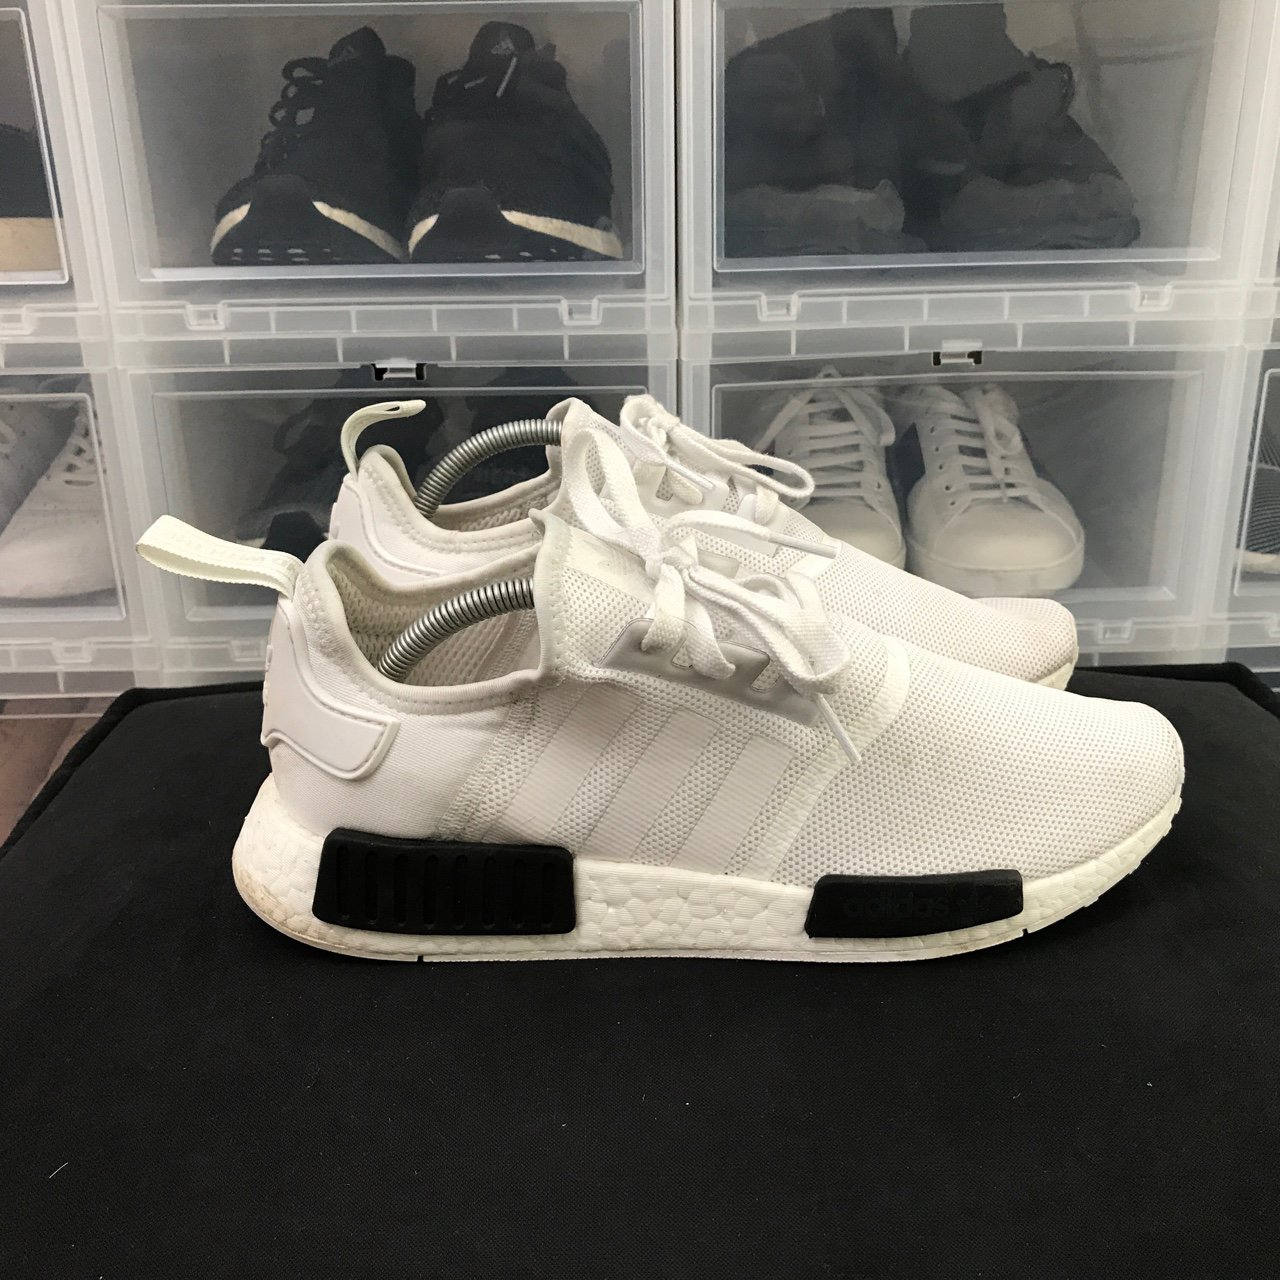 c4224da4e Adidas NMD R1 White Core Black Worn handful of times Box - Depop